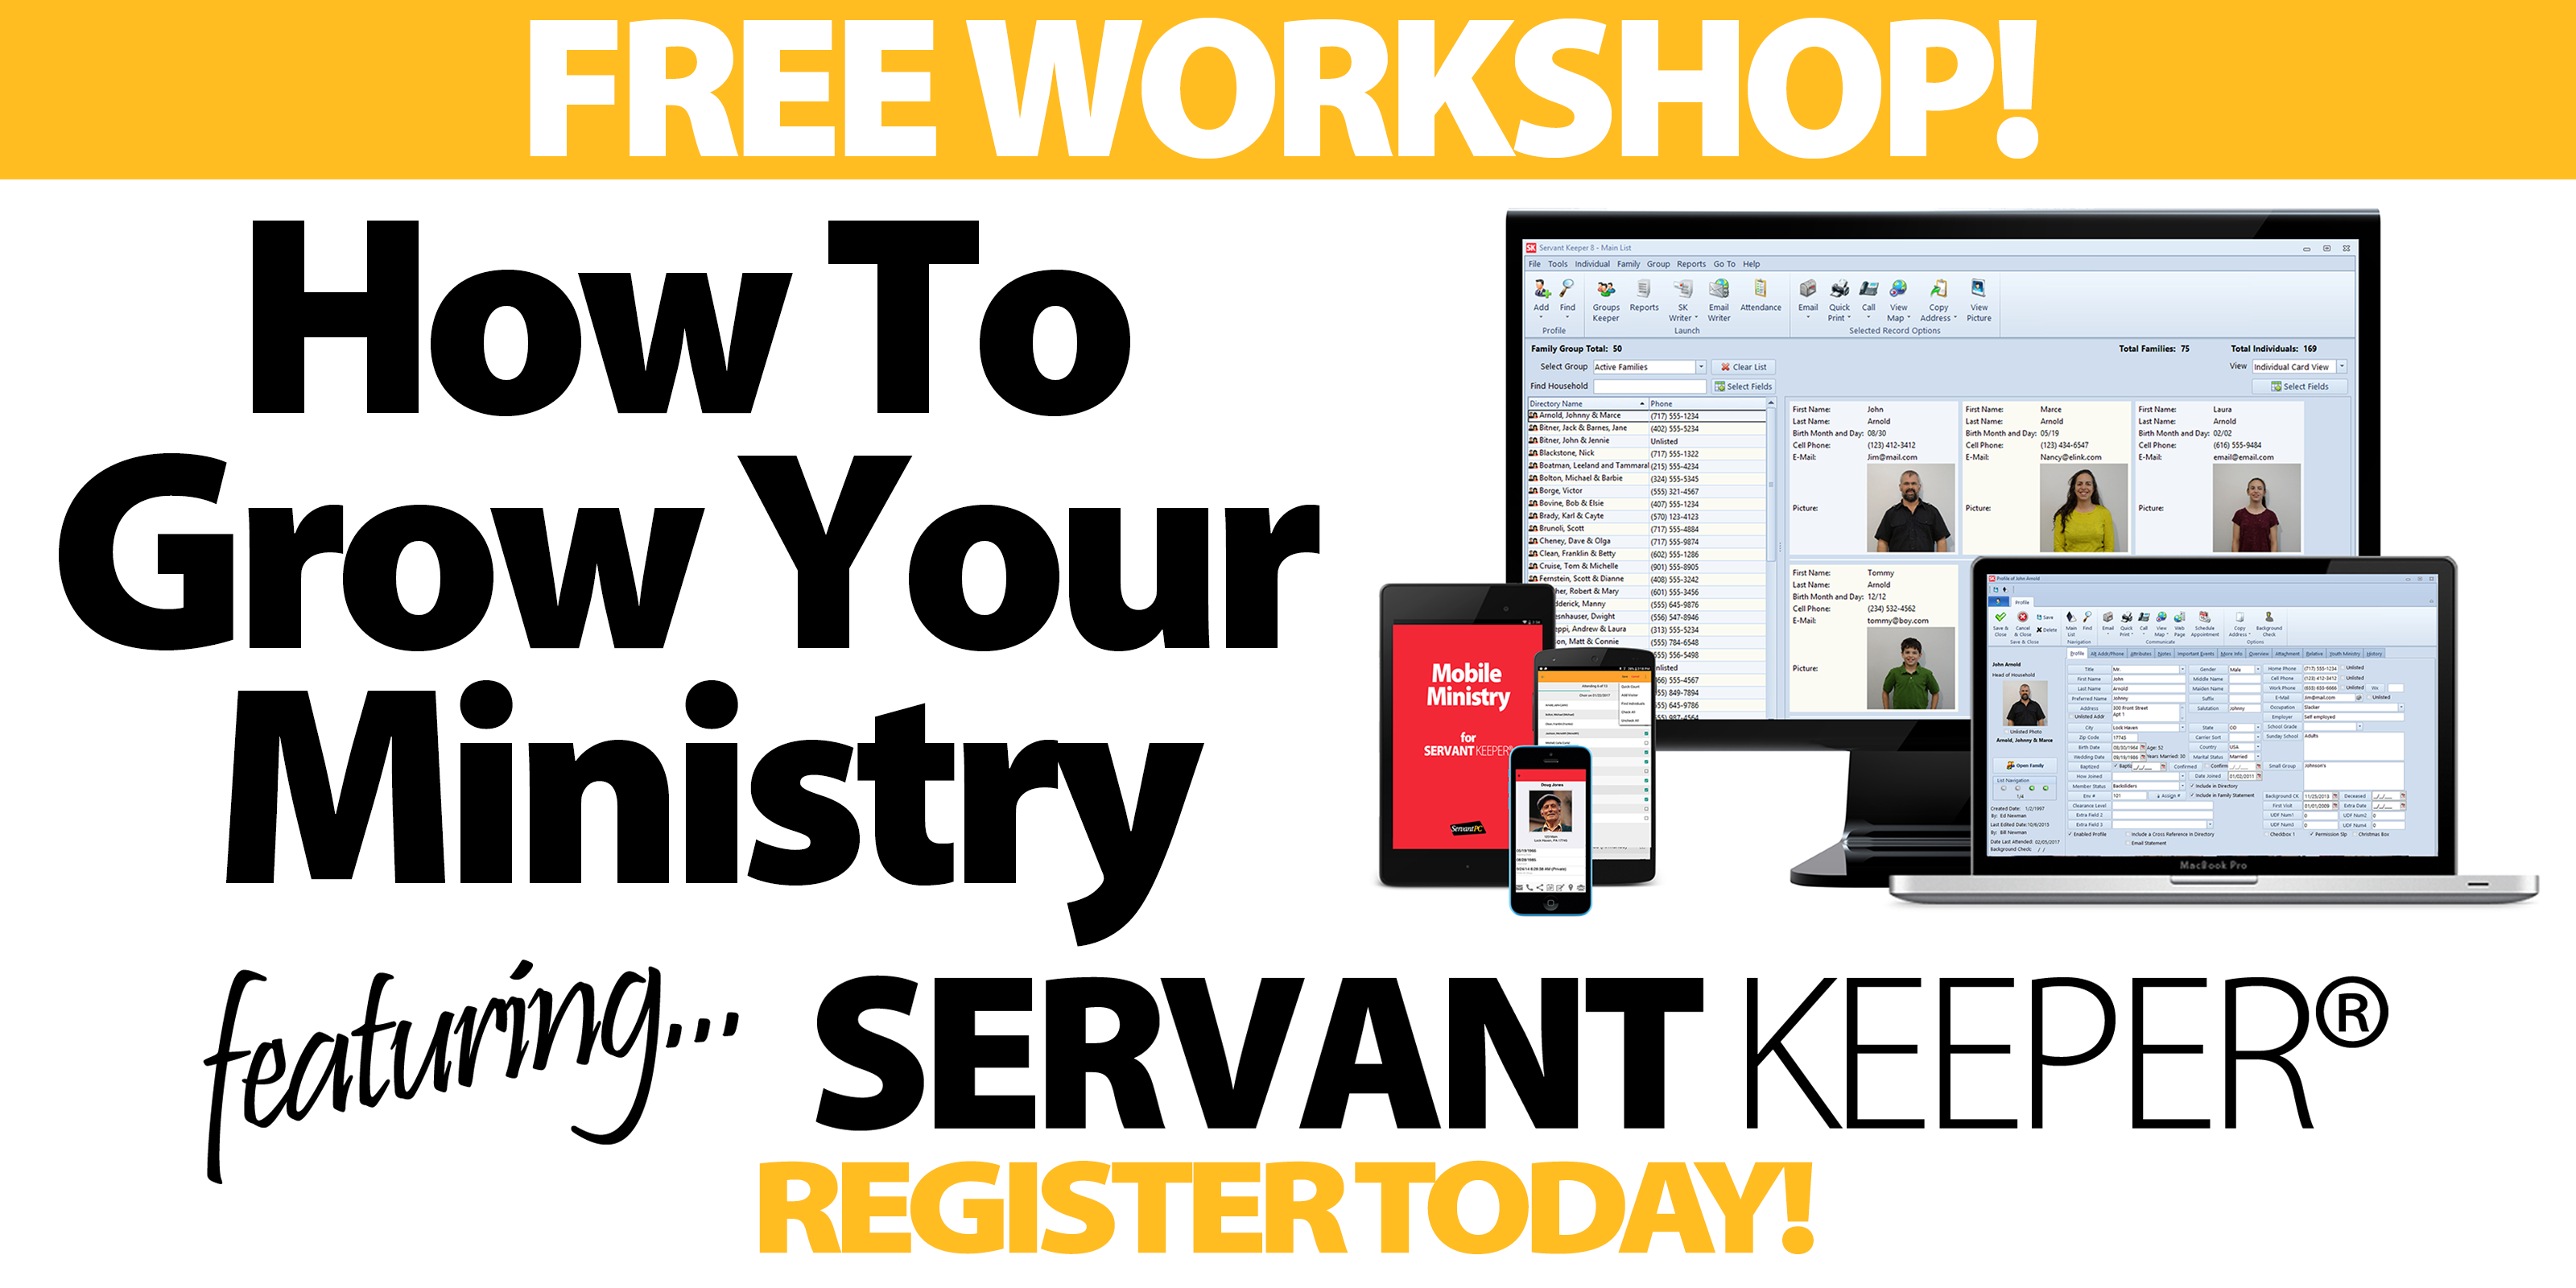 NYC (Parsippany) Workshop - How to Grow Your